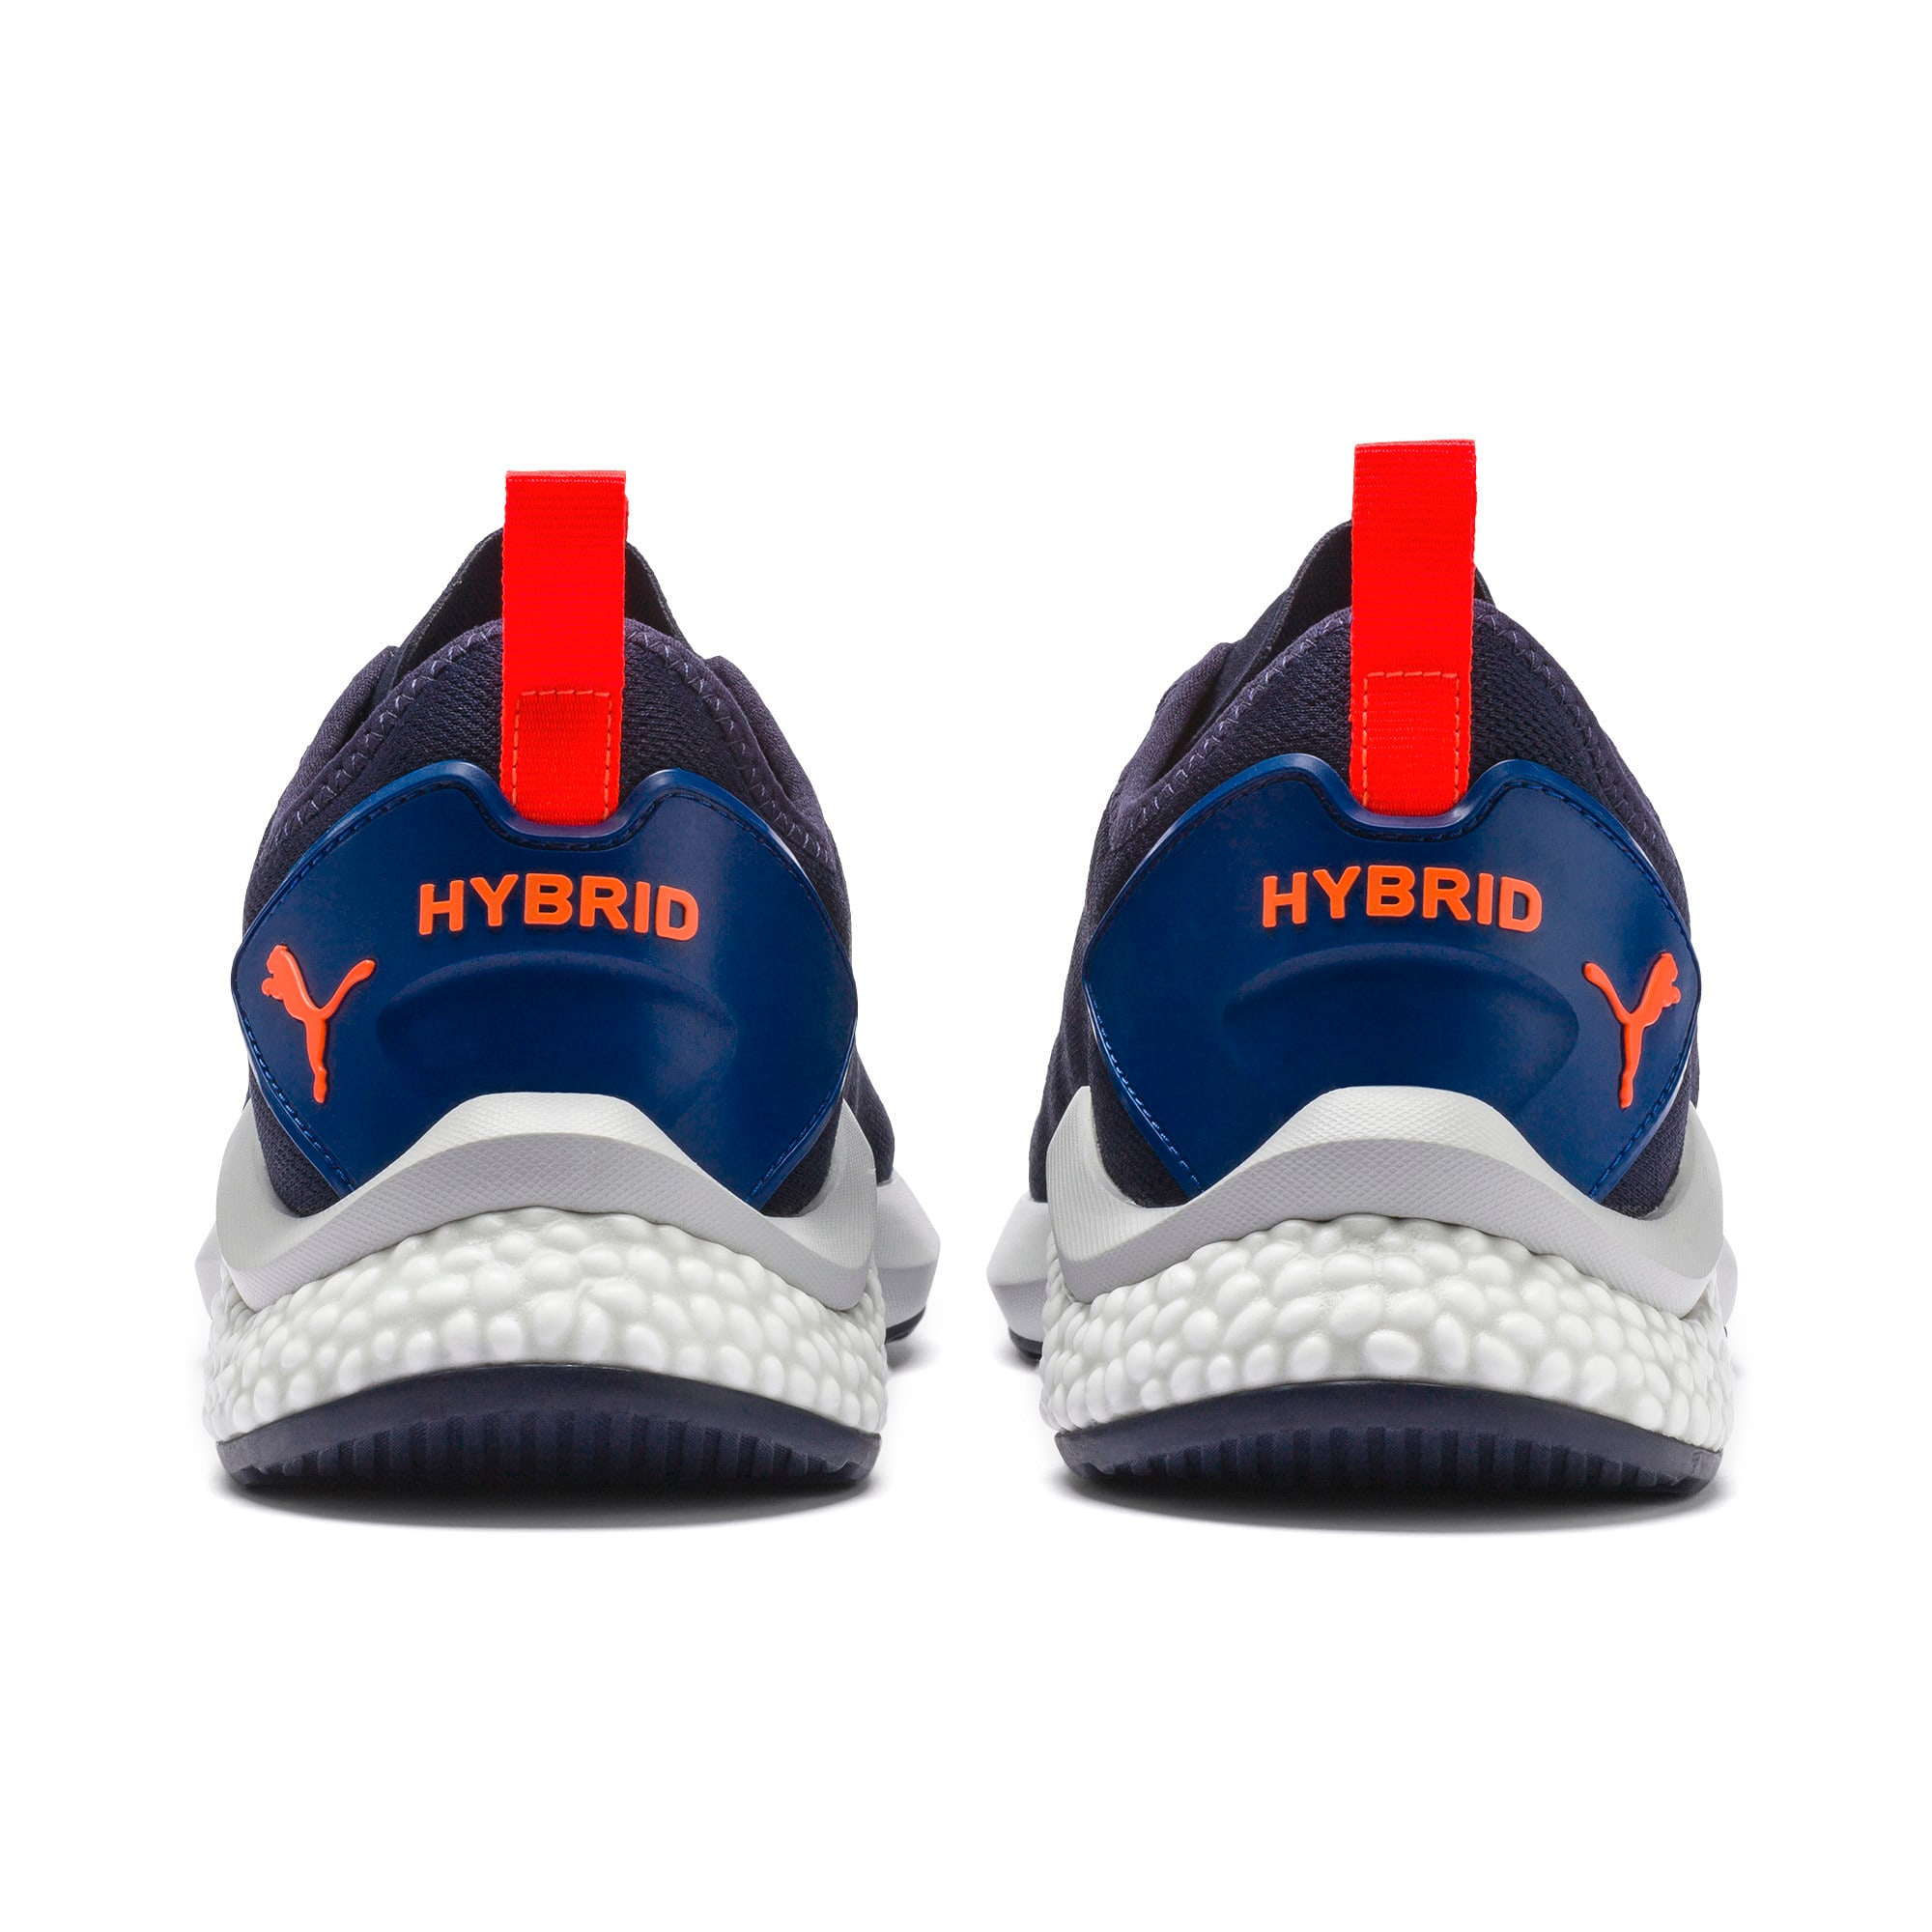 Thumbnail 5 of Hybrid NX Camo Men's Running Sneakers, GalaxyBlue-Peacoat-HighRise, medium-IND